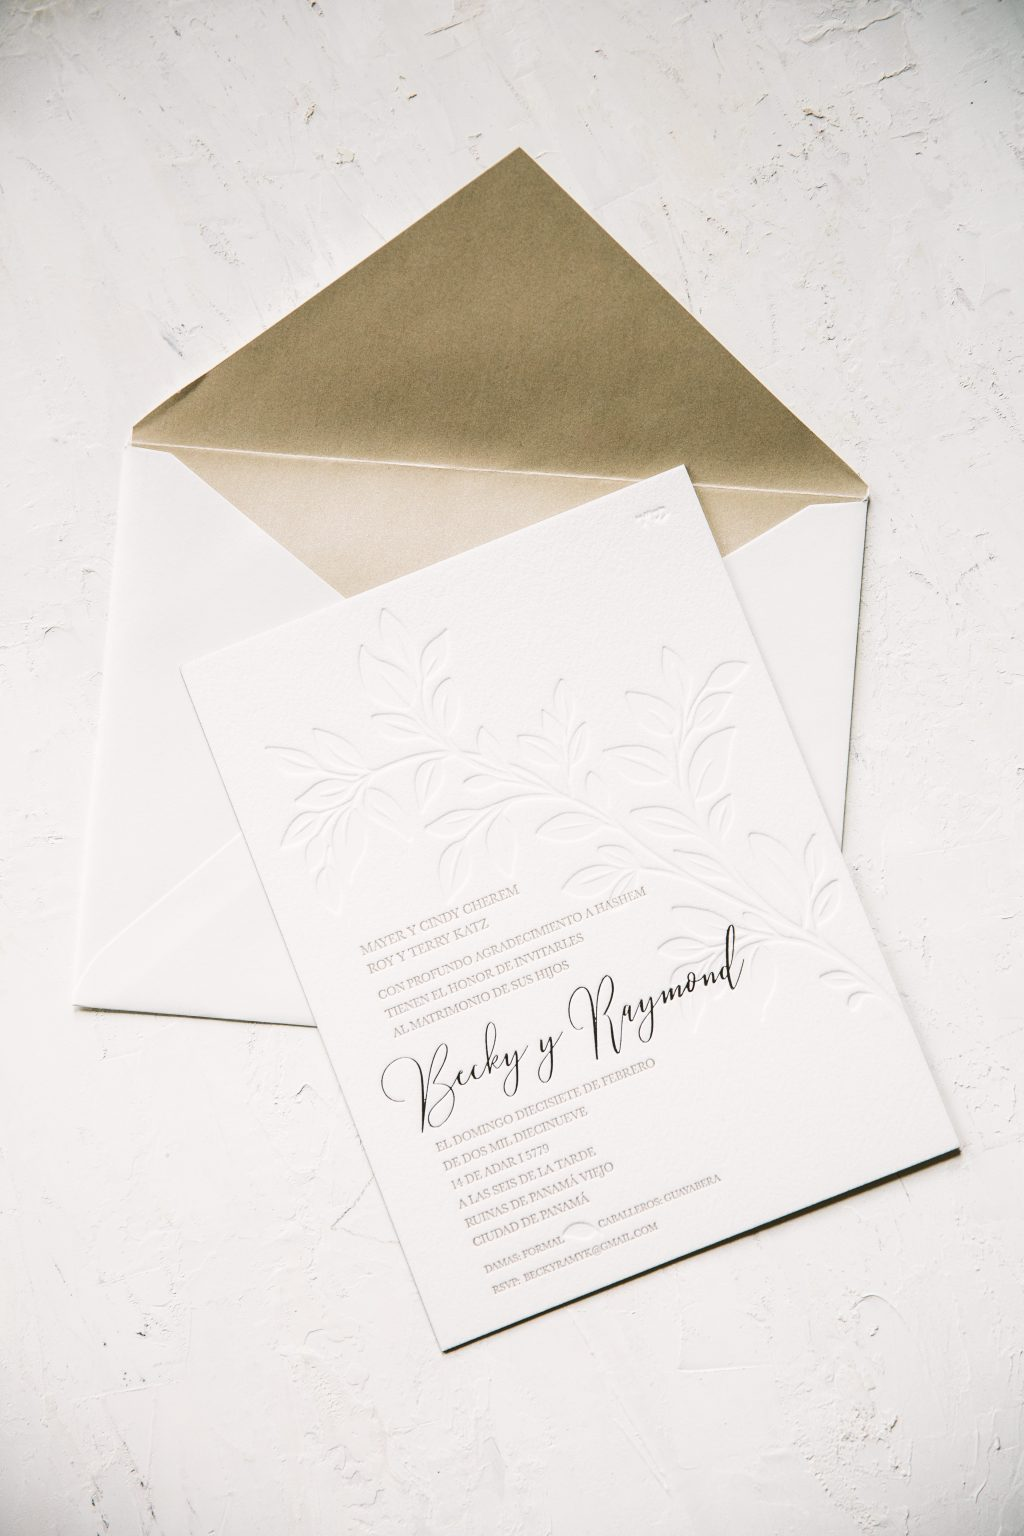 Botanical blind deboss wedding invitations